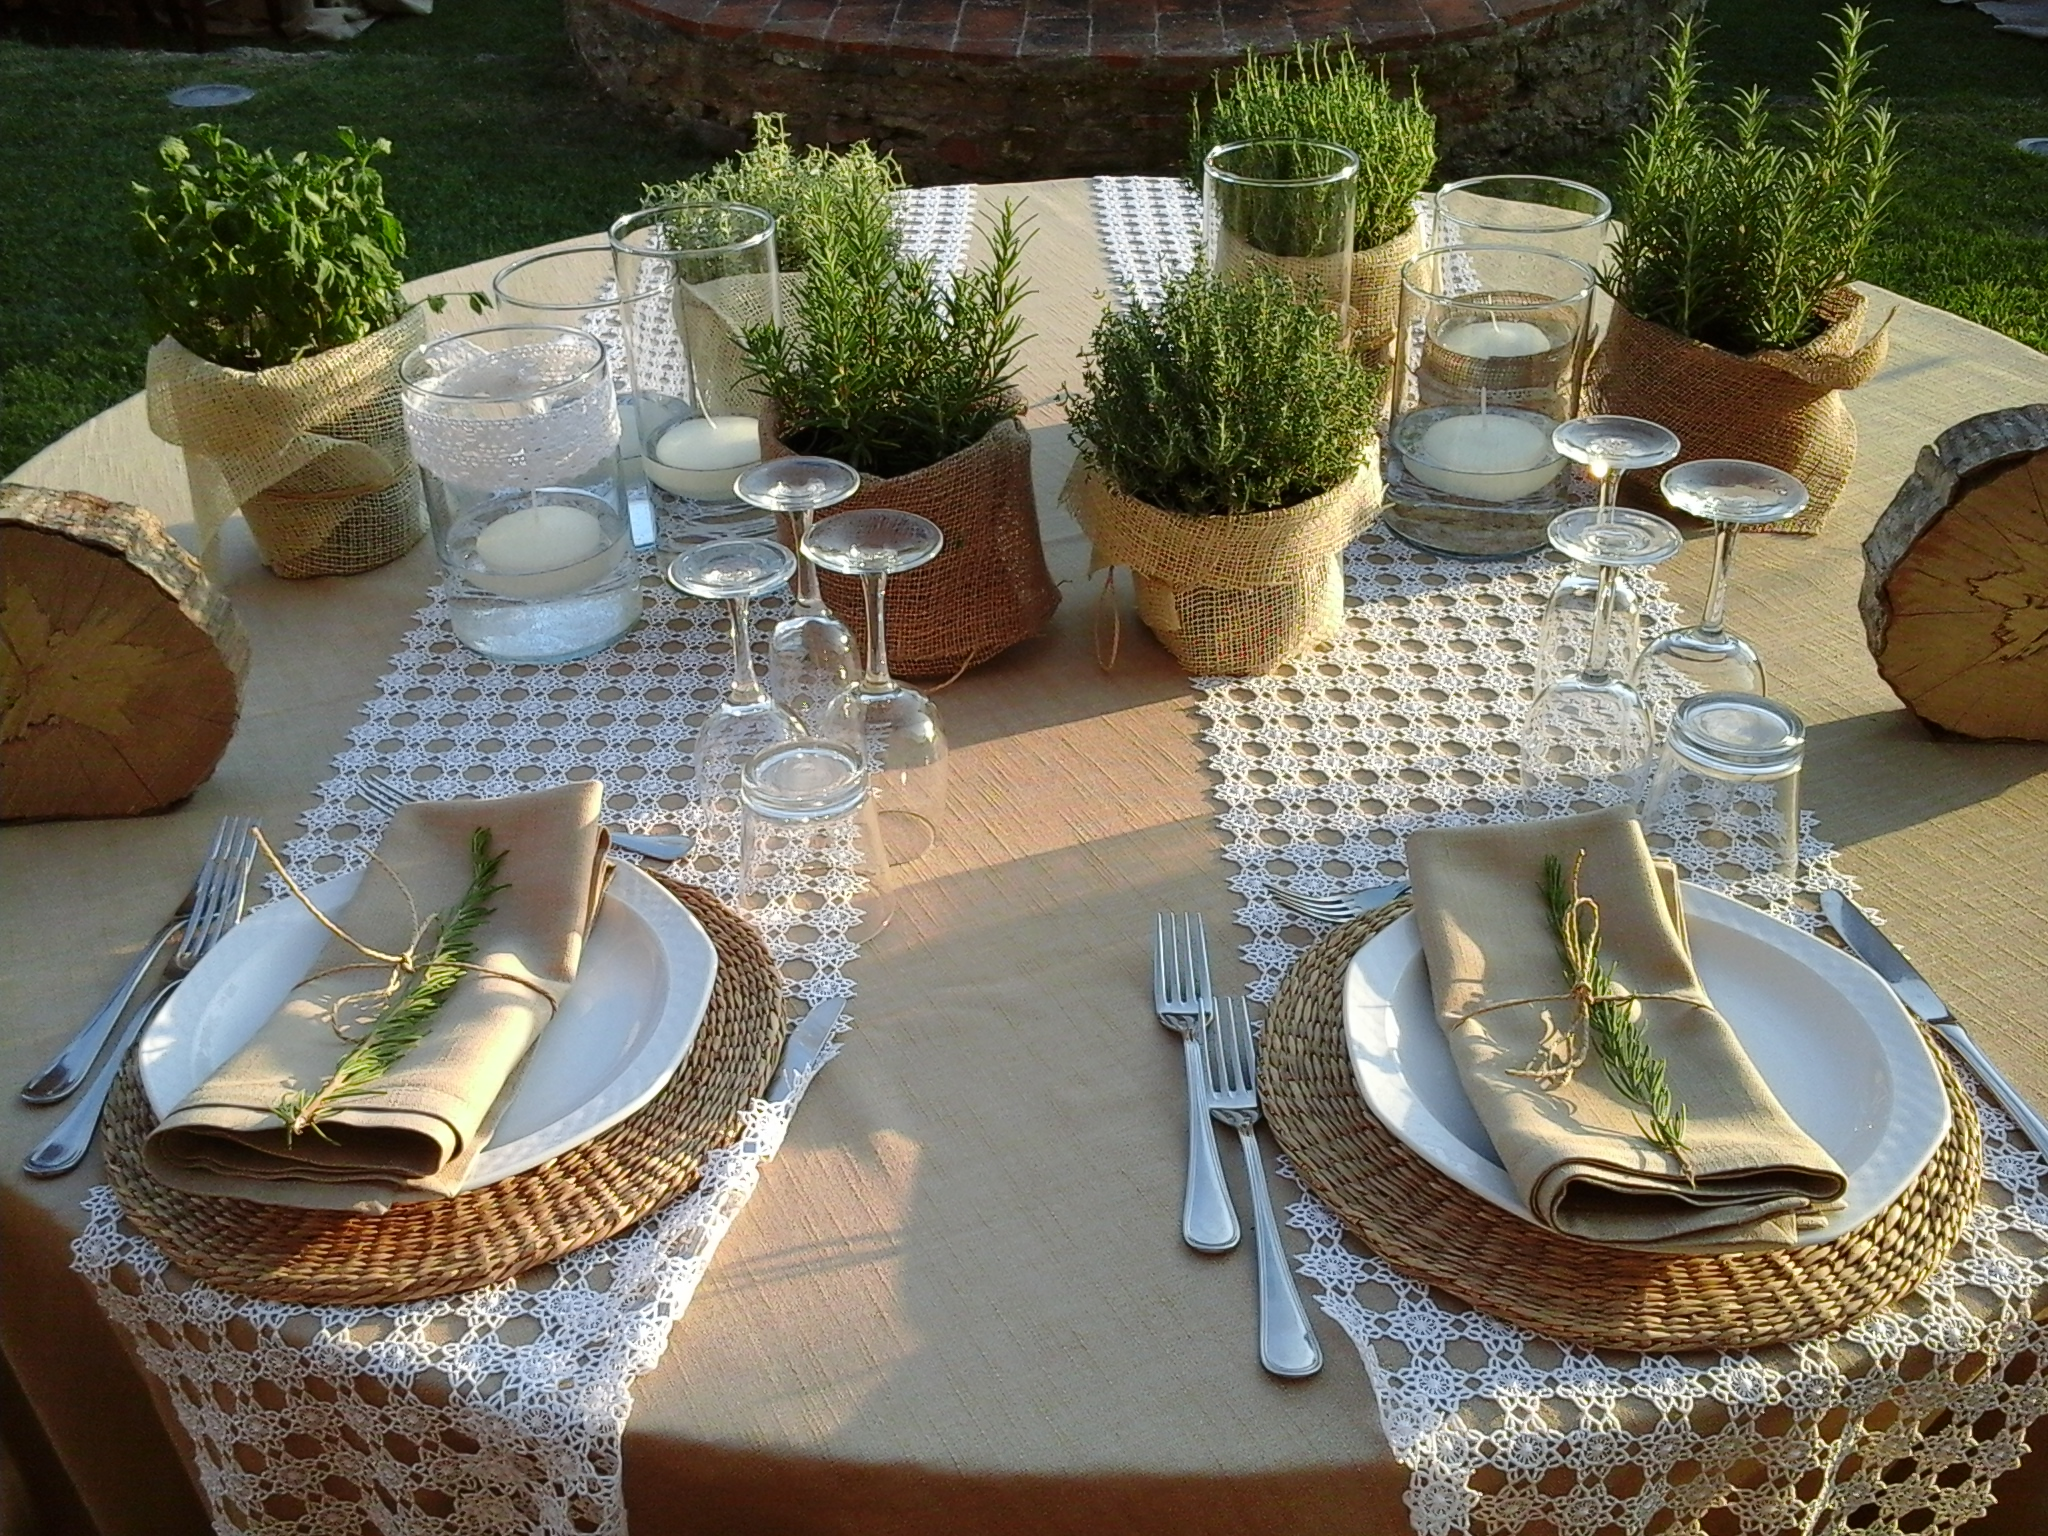 Matrimonio Country Chic Firenze : Matrimonio country in toscana petali di rosa wedding planner